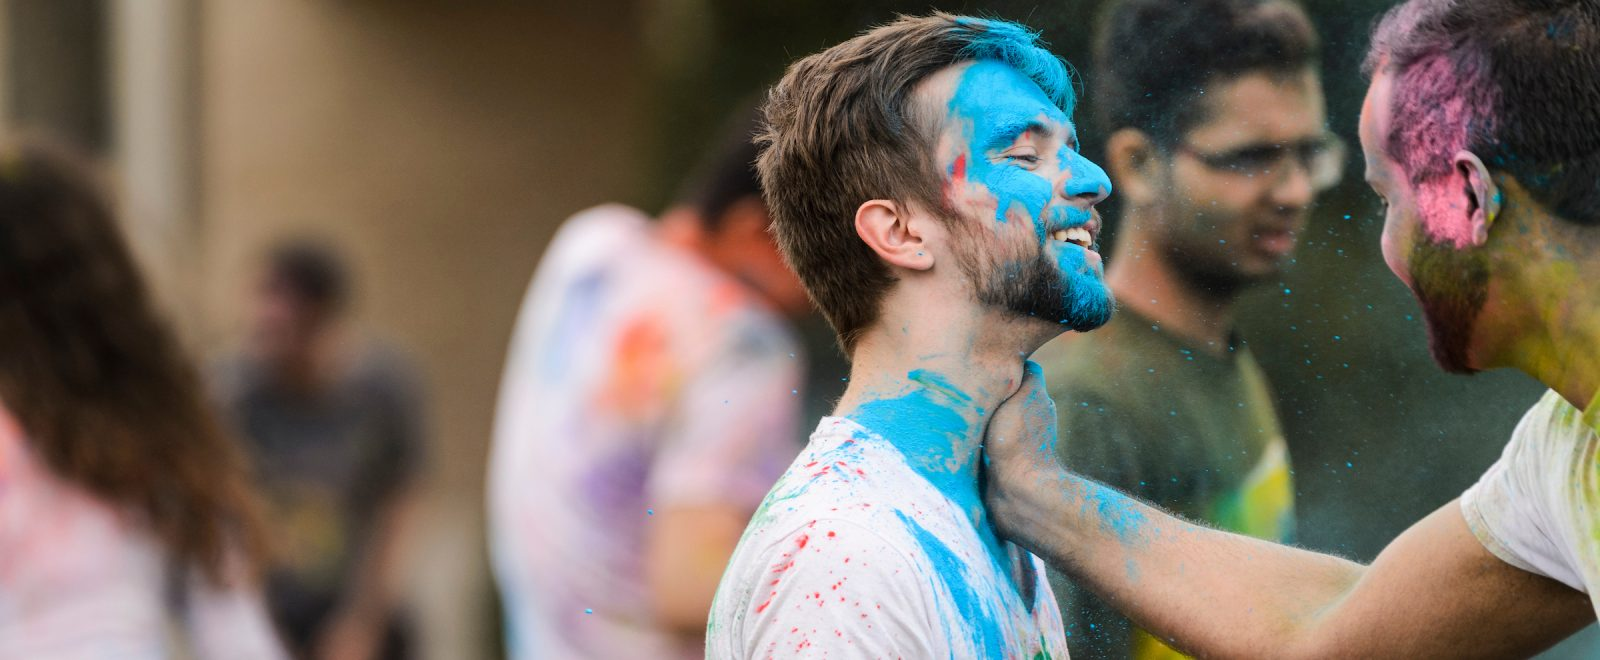 male student with blue chalked face smiles during the festival of colors, an Indian tradition.